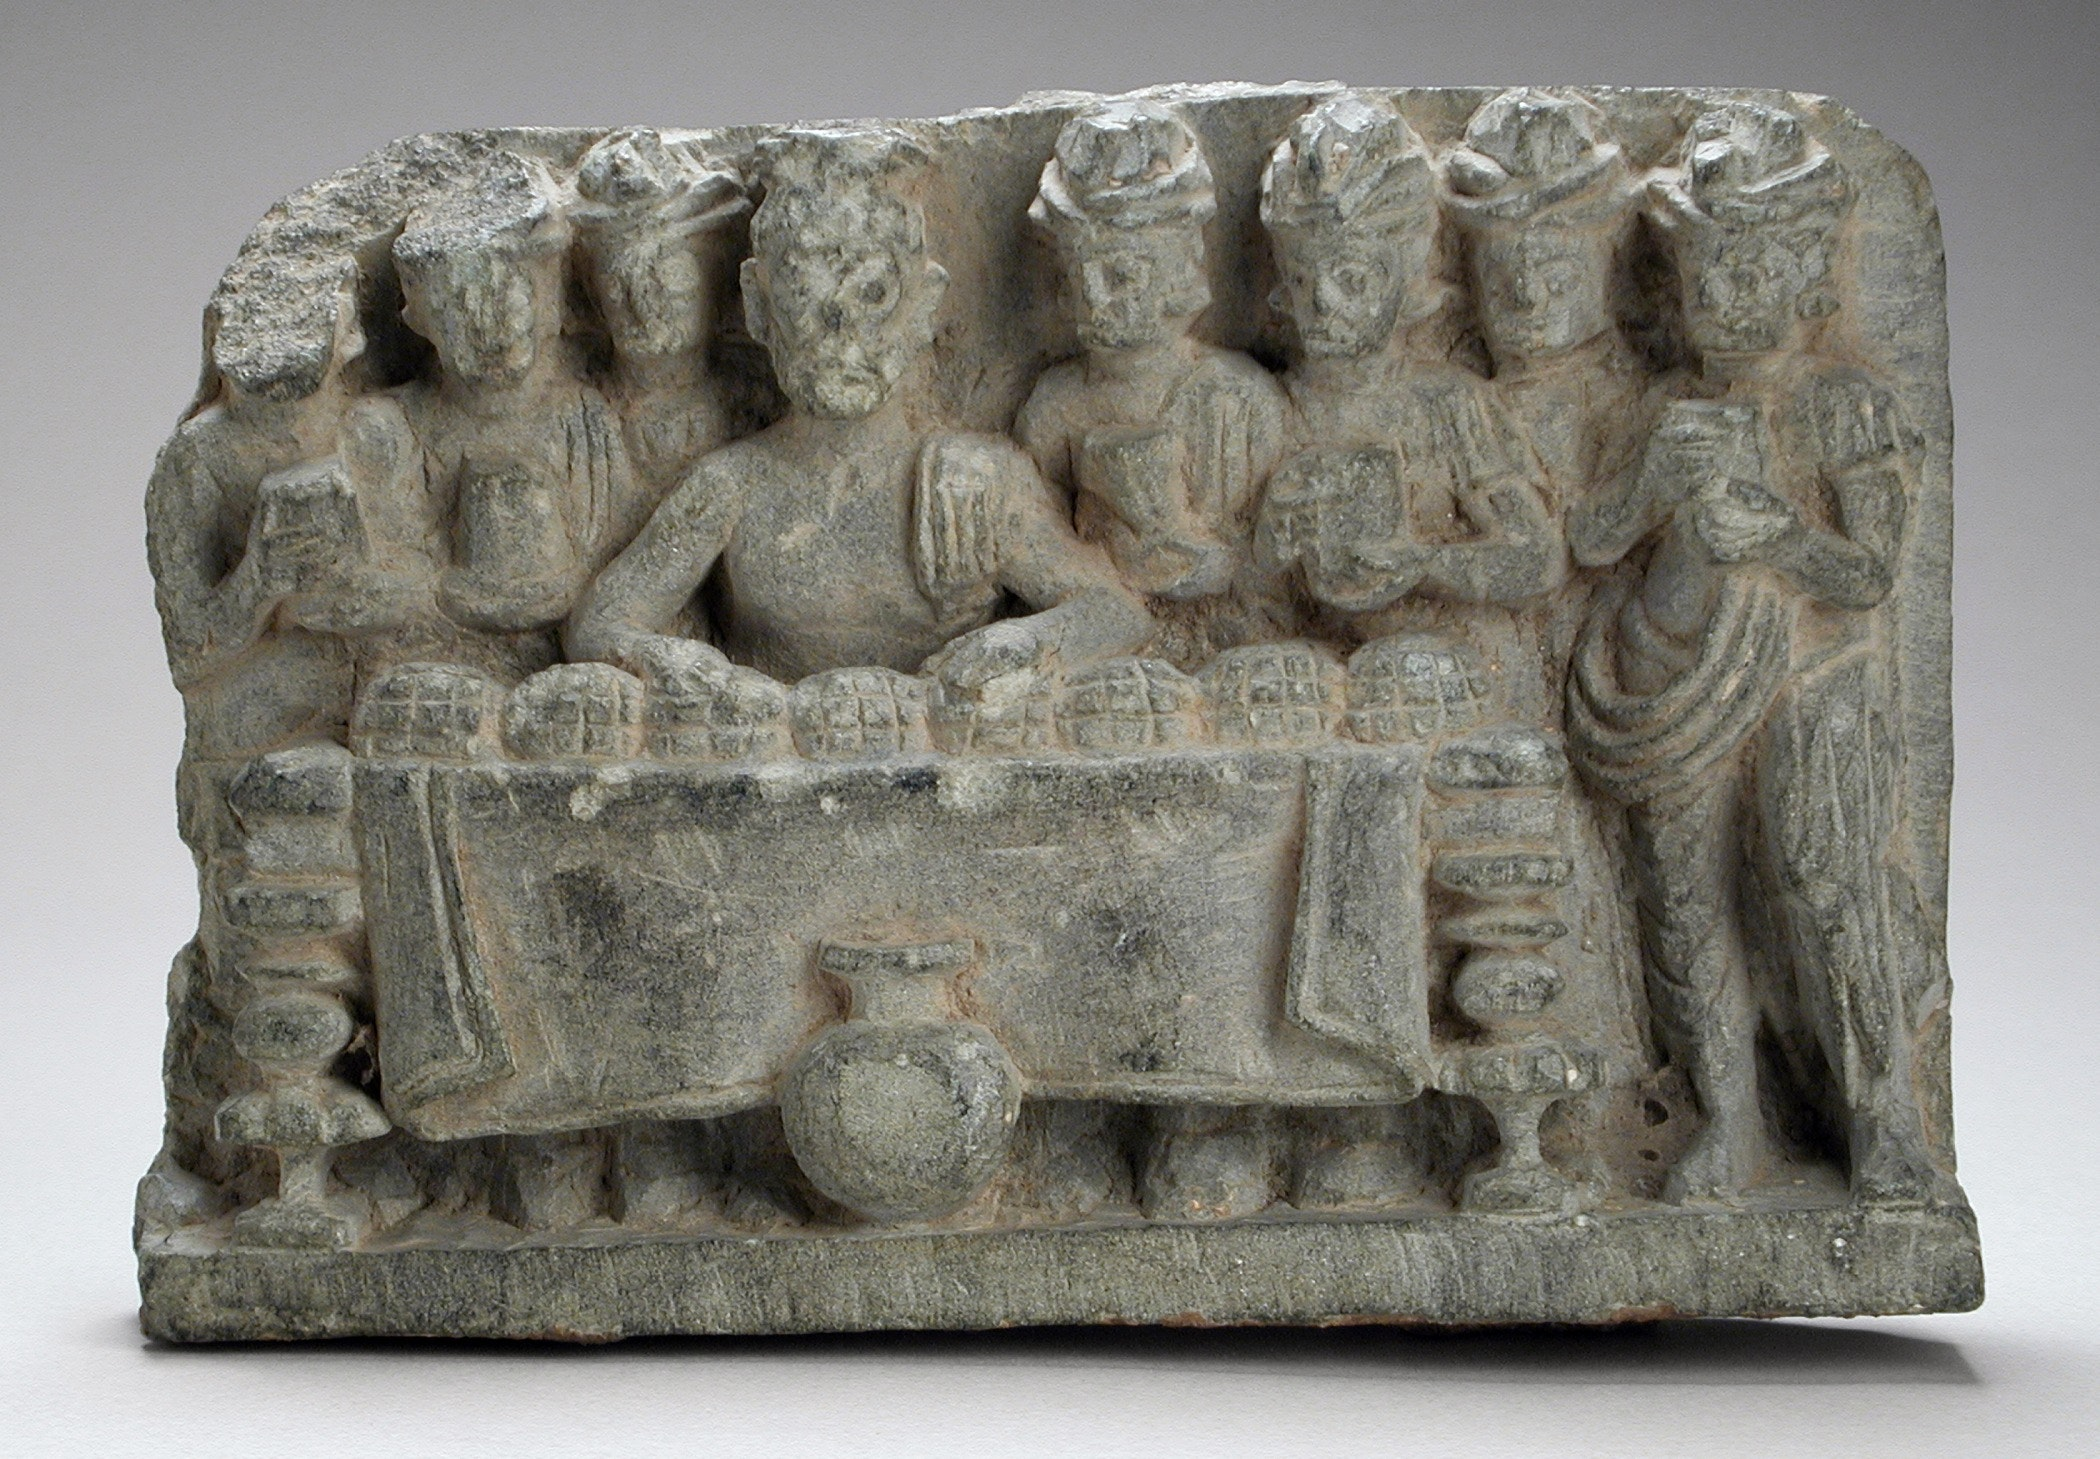 A sculpture depicting the distribution of the Buddha's relics. Photo credit: Los Angeles County Museum of Art/Wikimedia Commons